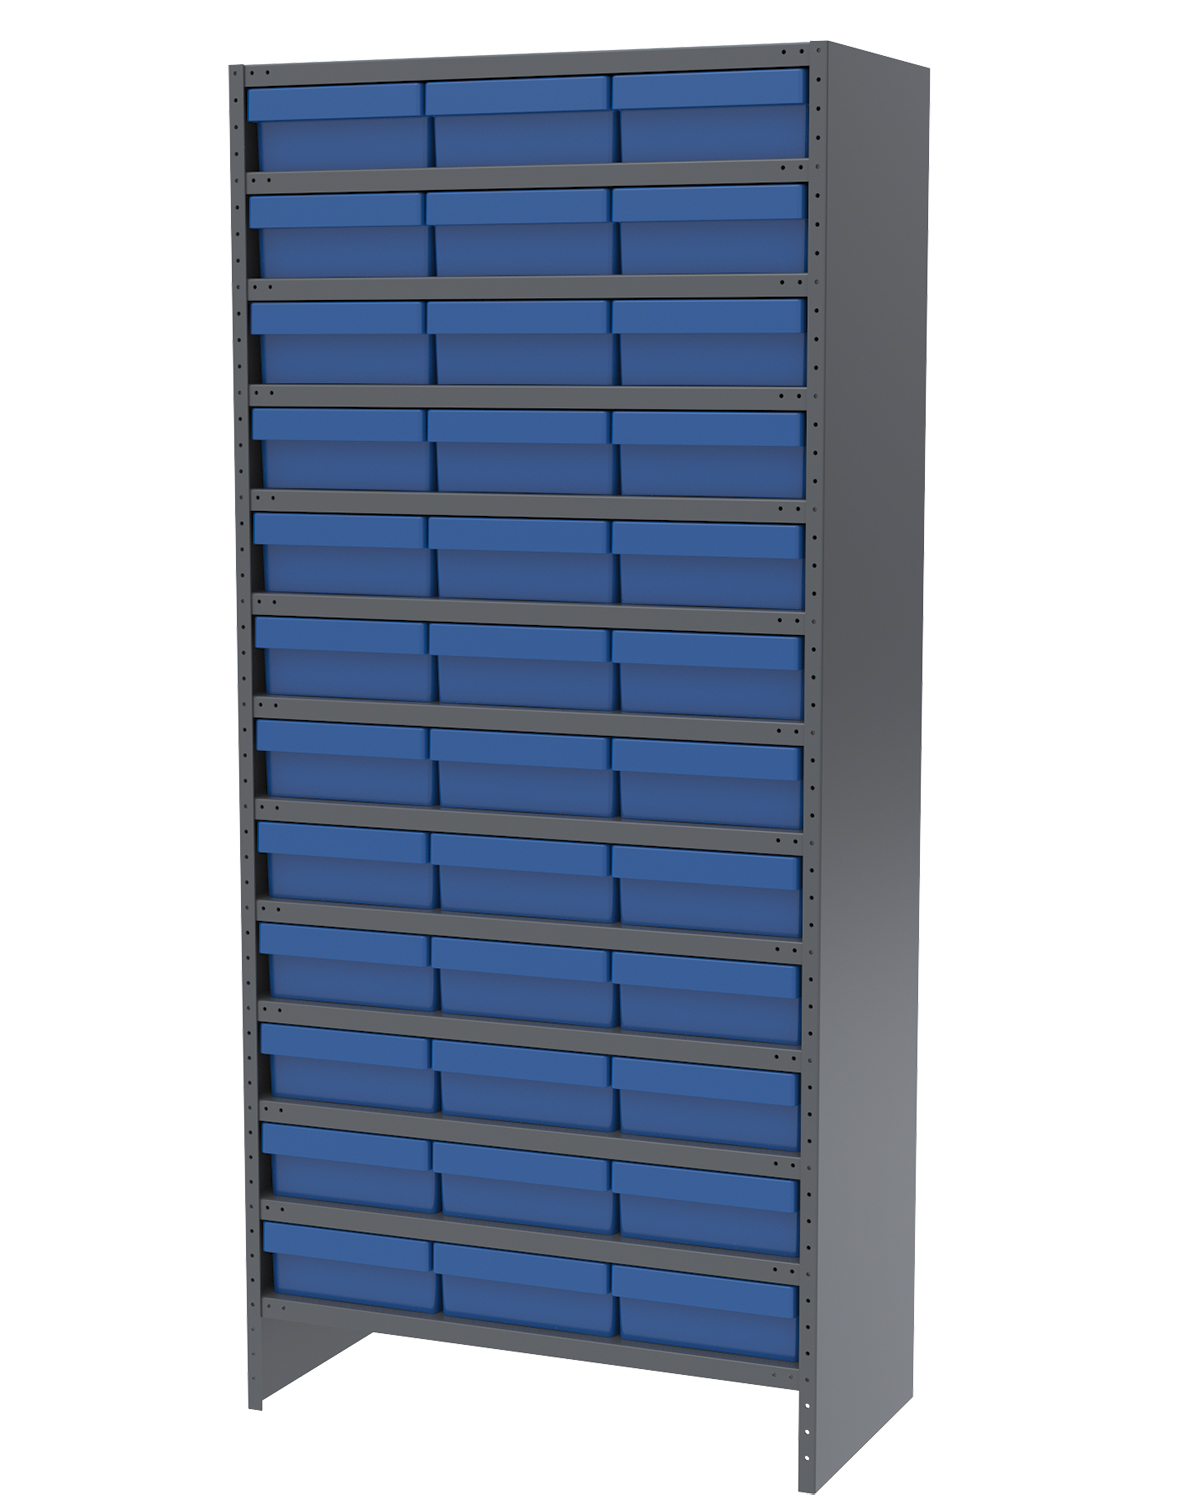 Enclosed Steel Shelving Kit, 18x36x79, 36 AkroDrawers, Gray/Blue.  This item sold in carton quantities of 1.